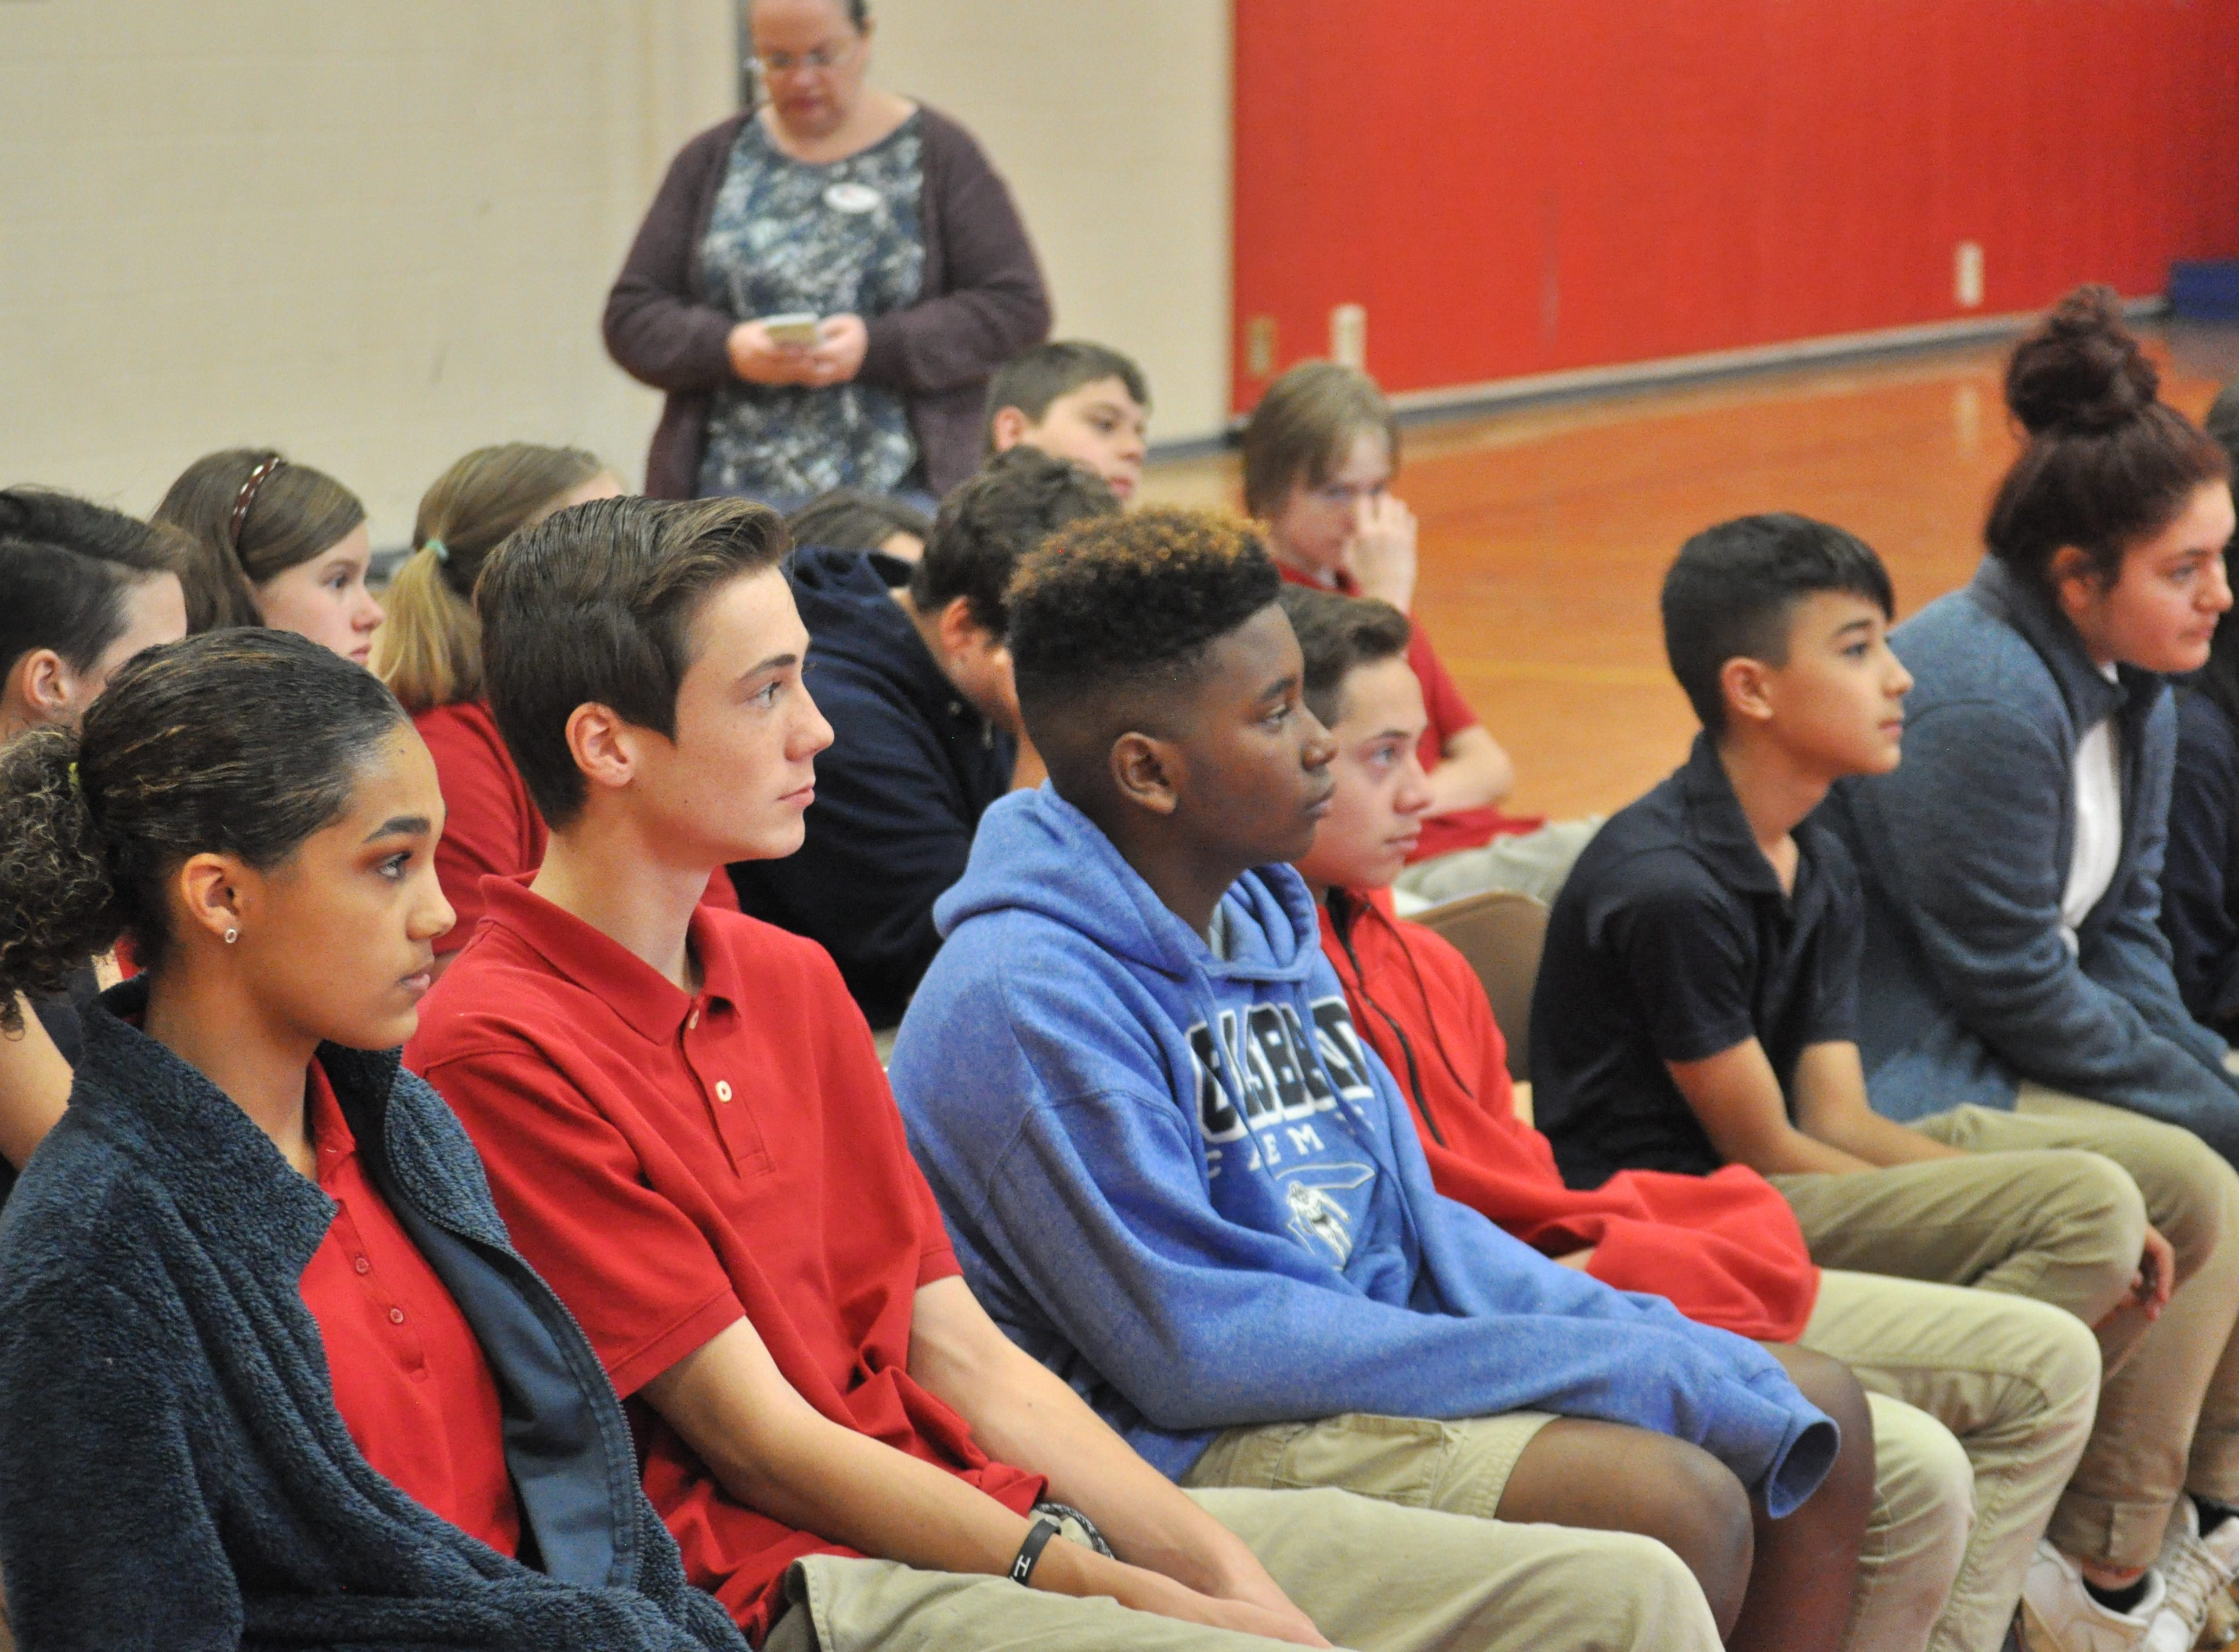 Students listen to a lecture on voting, Nov. 6, 2018 at Jefferson Montessori Academy.